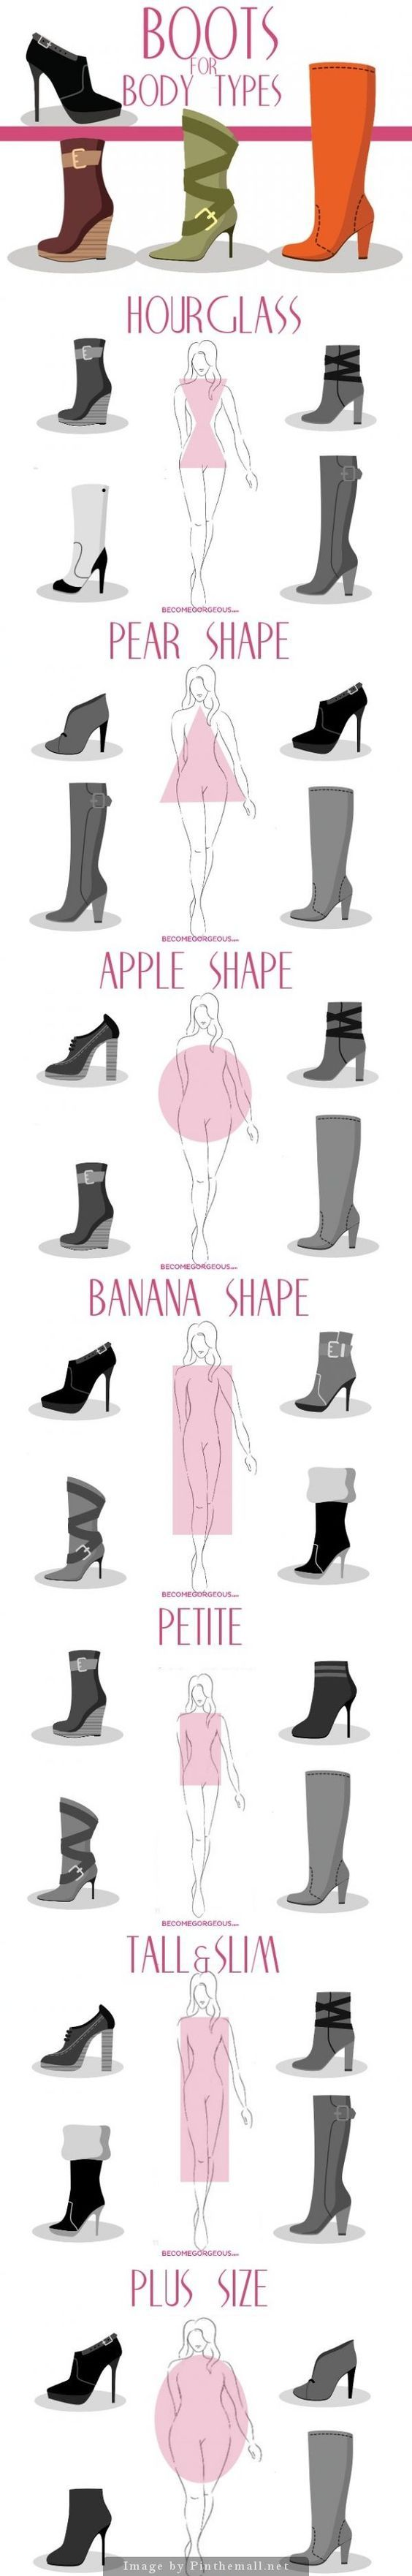 10 Essential And Life Changing Style Charts For Every Woman Right Now - Page 11 of 11 - FashionPro